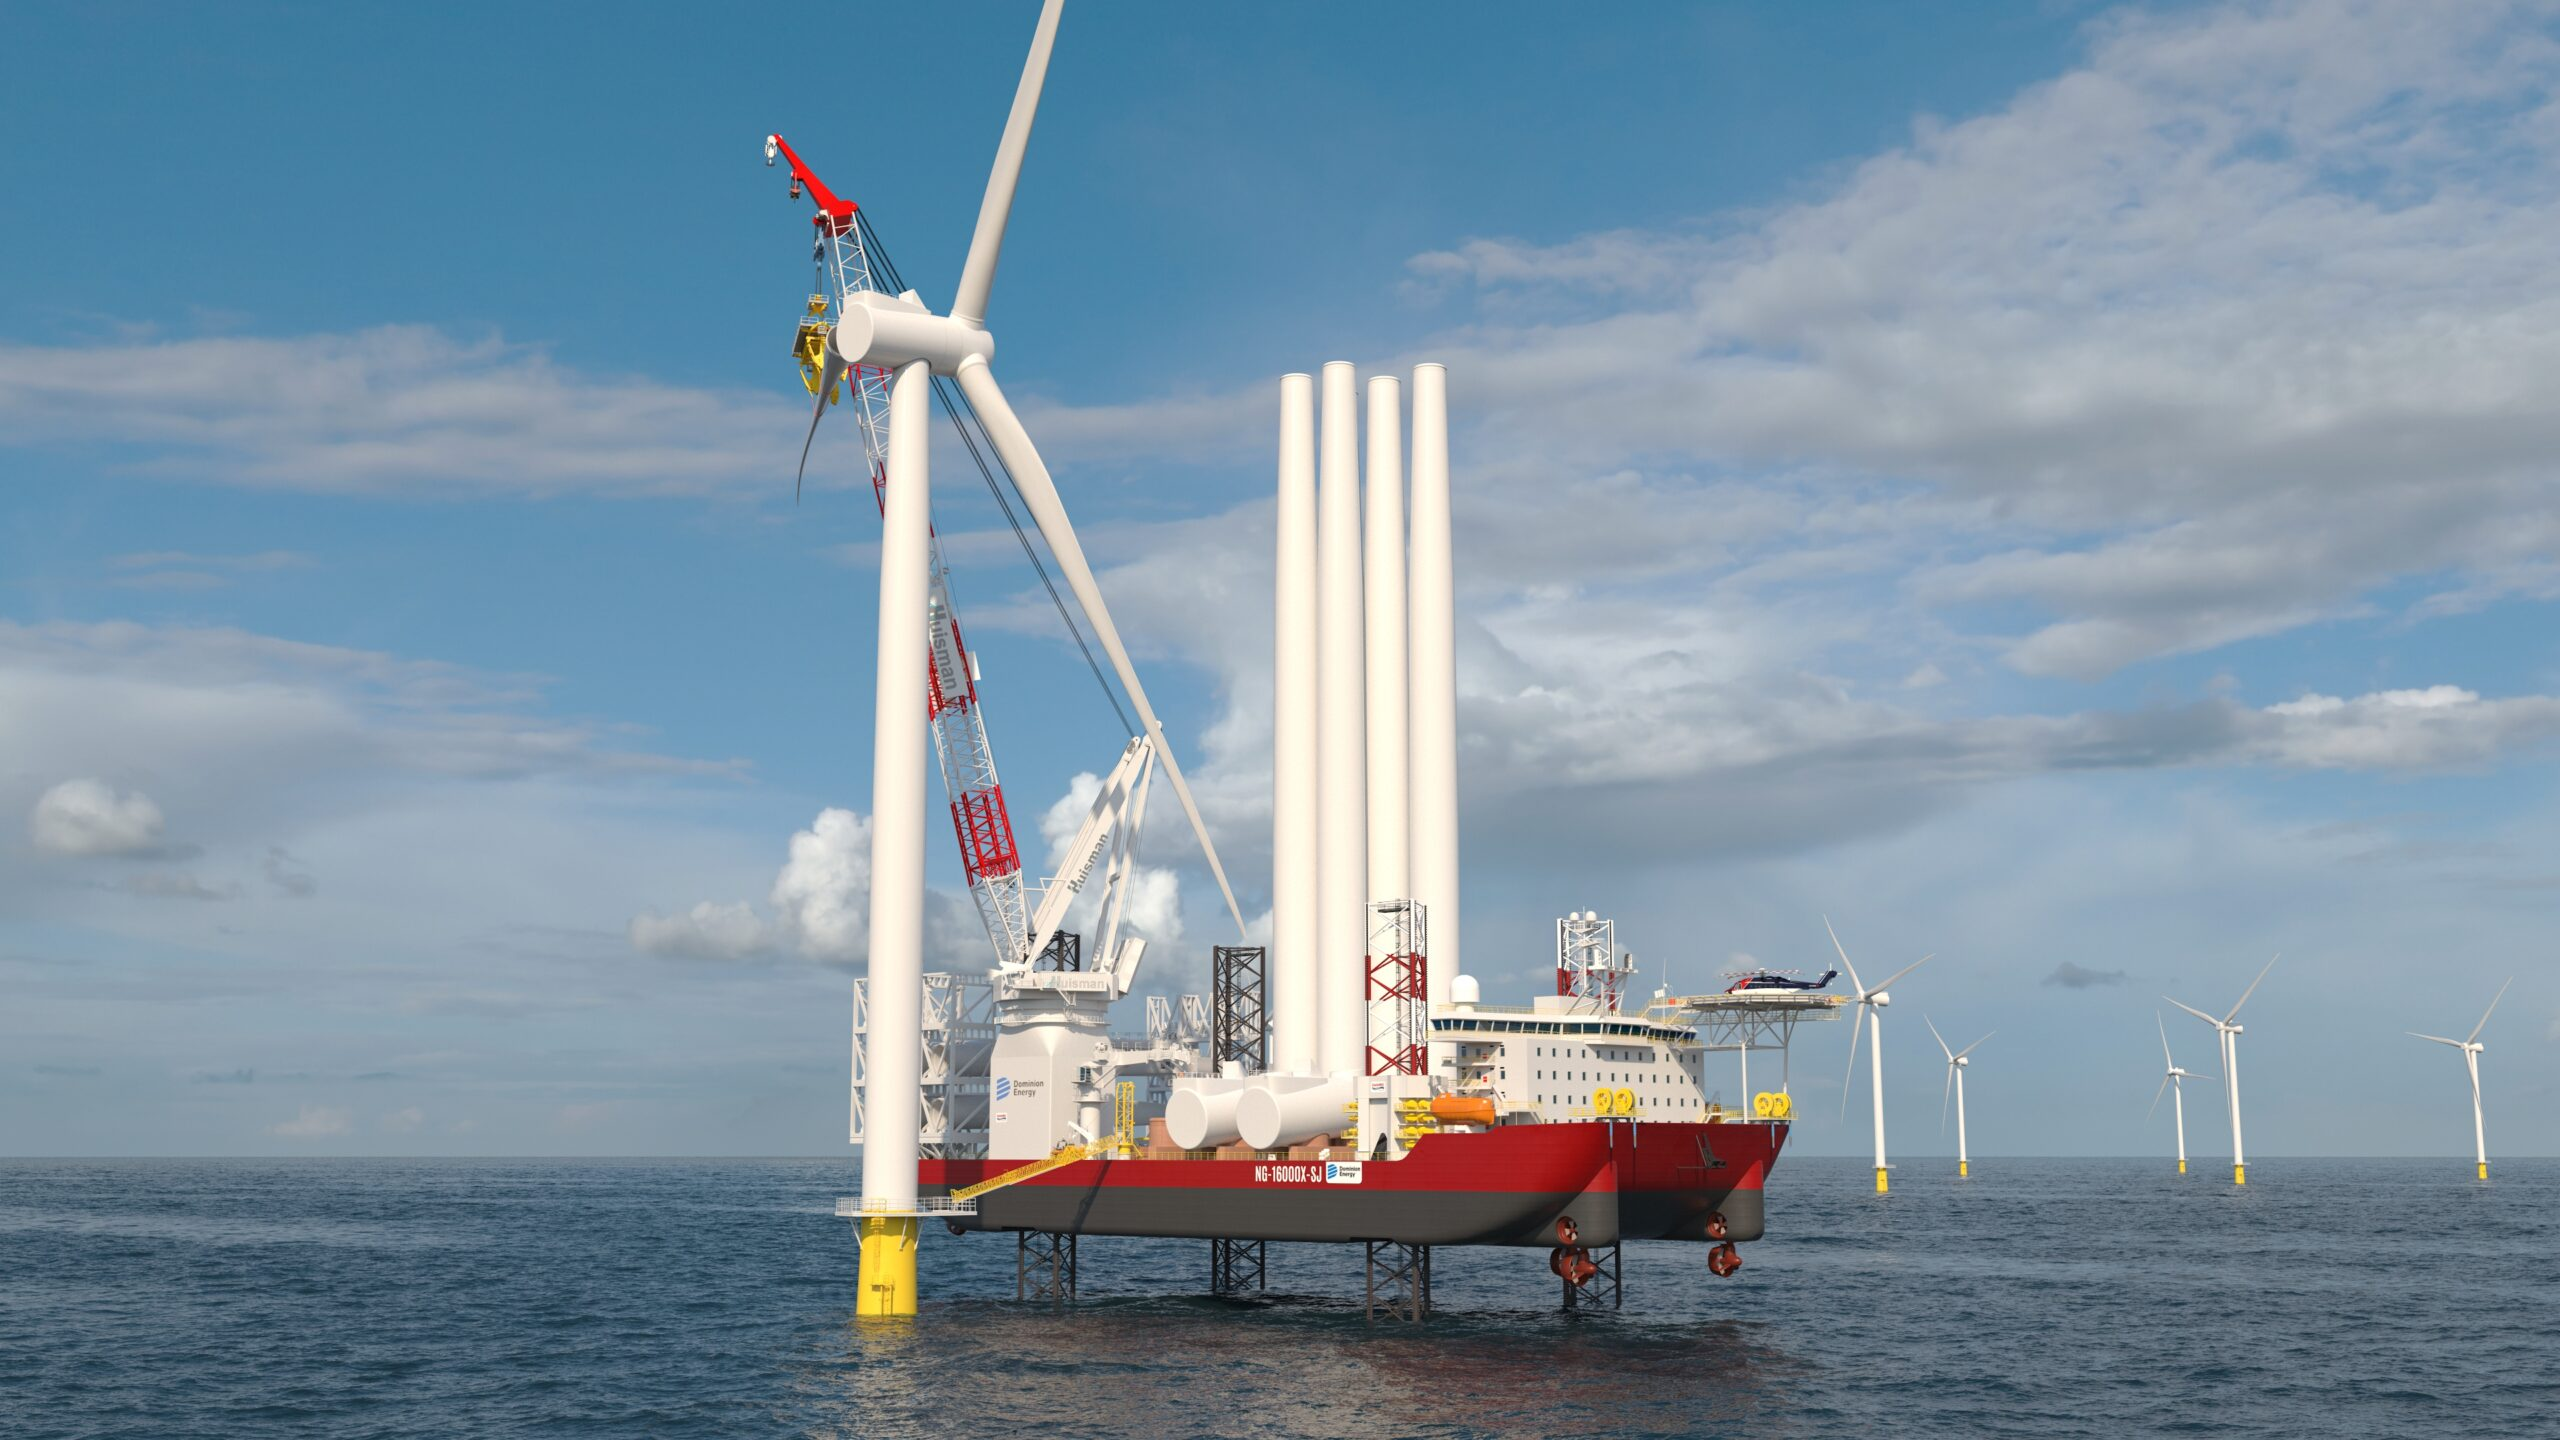 Offshore wind industry leaders ask Congress to back long-term plans to increase production